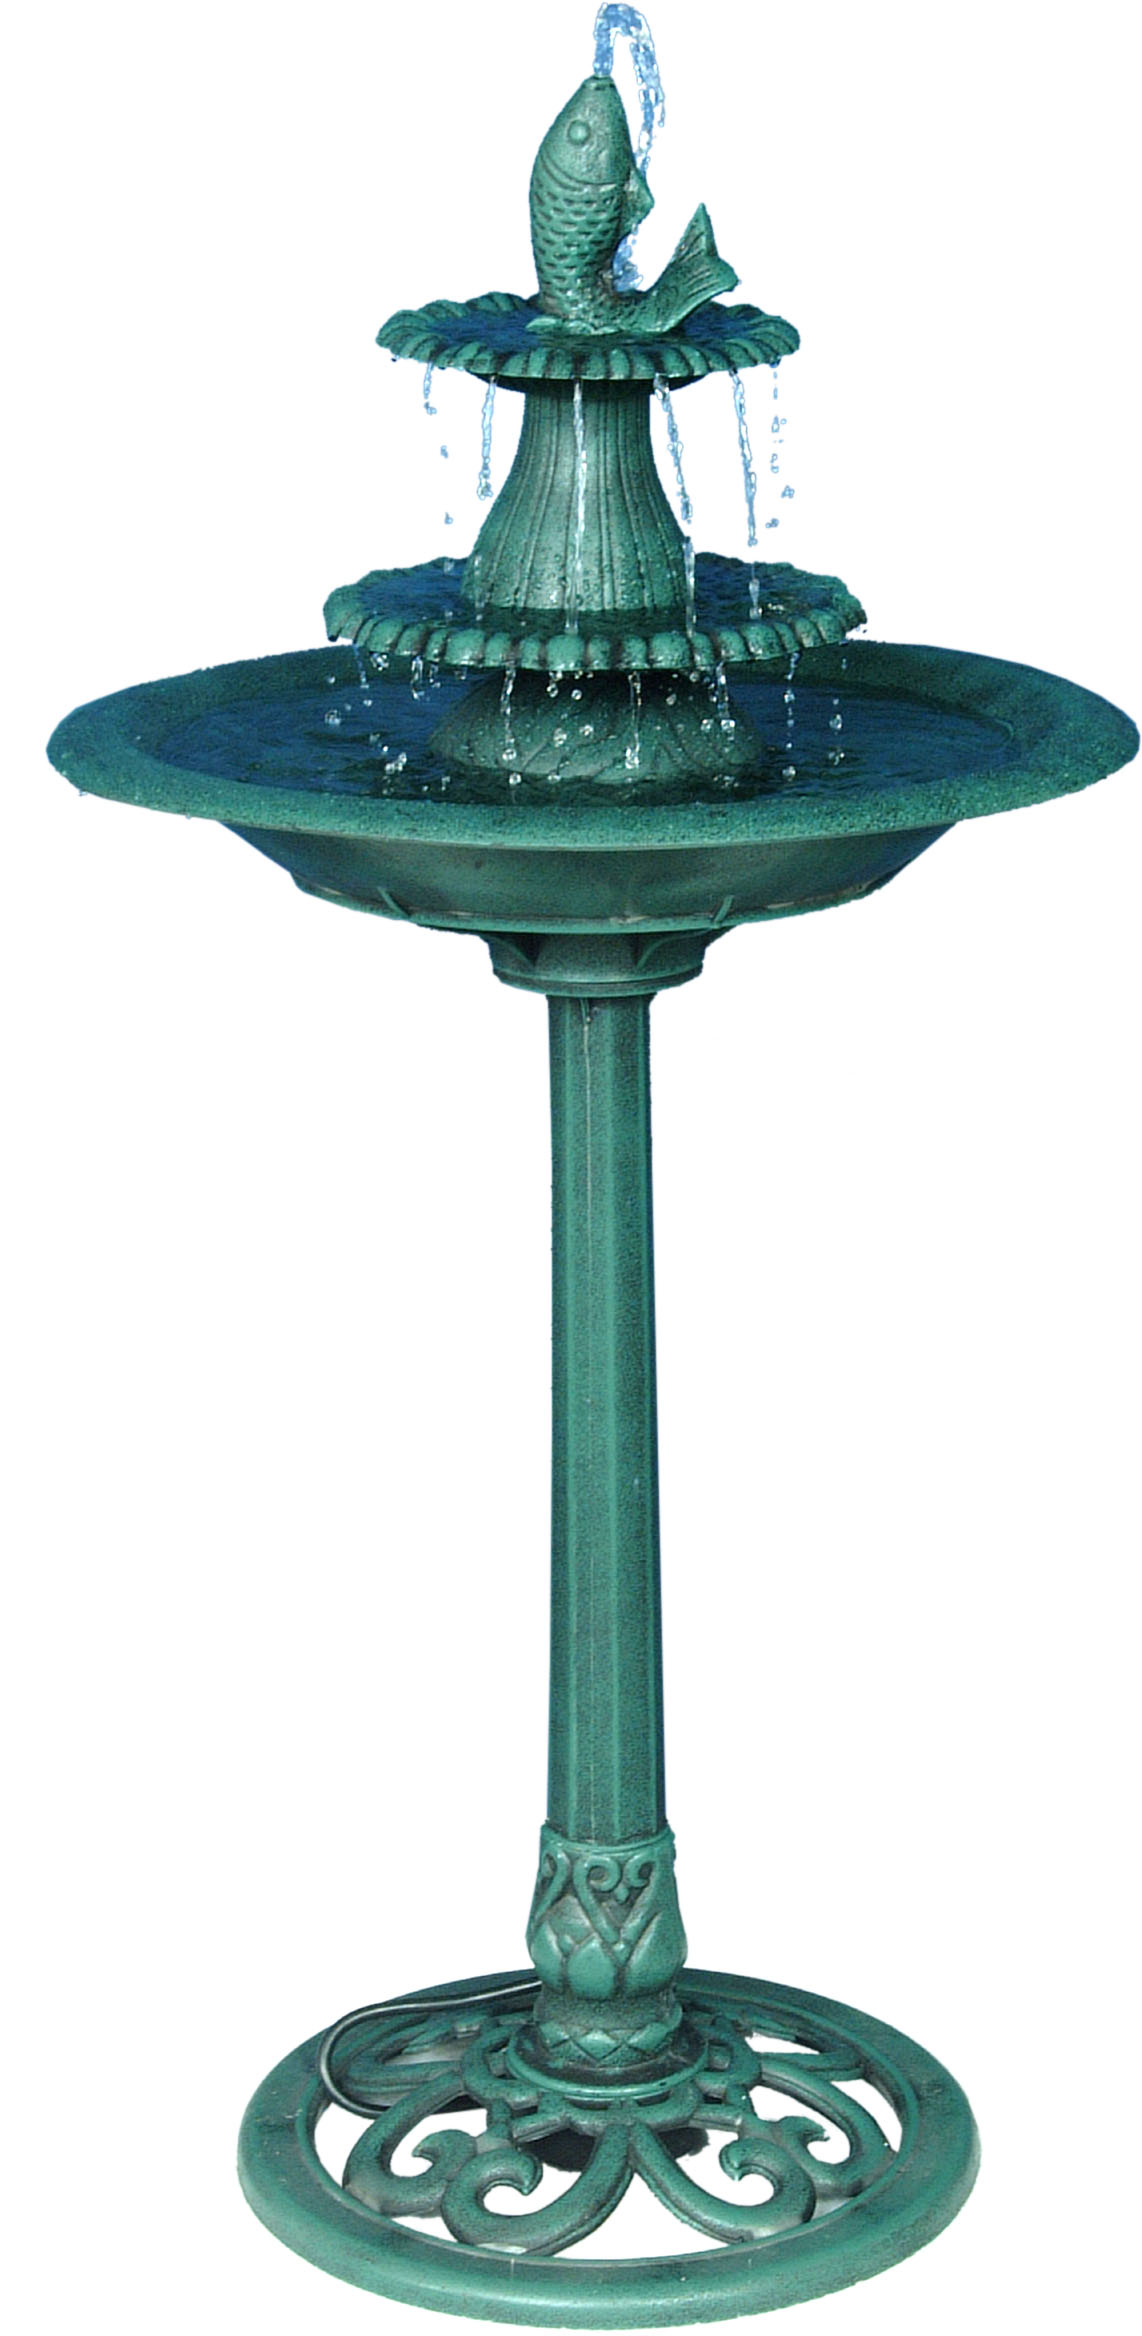 41 Inch Tiered Pedestal Fish Fountain Birdbath